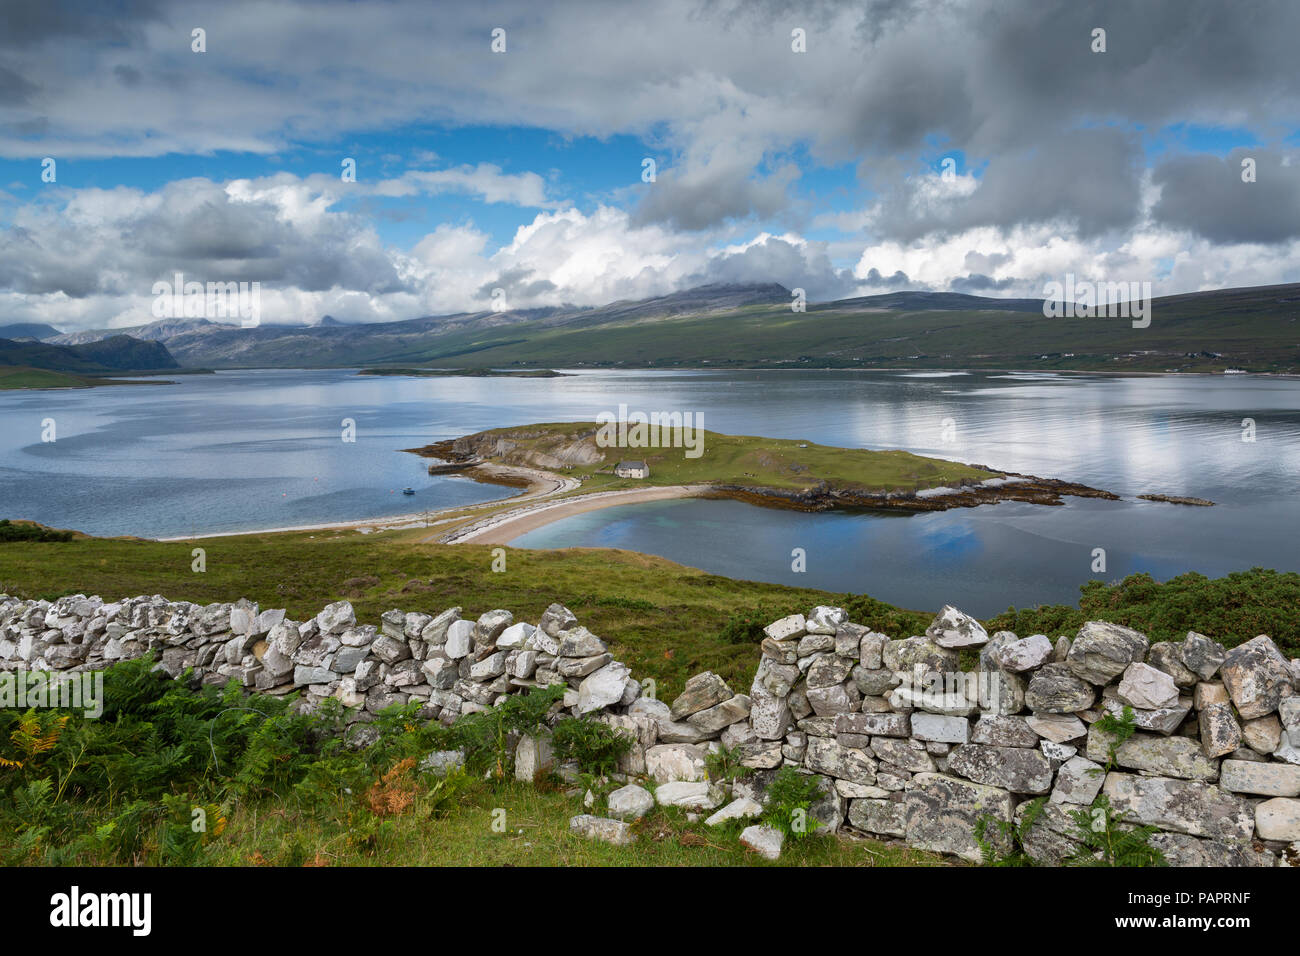 Ard Neackie, Loch Eriboll, Sutherland, Scotland. The land feature is joined to the mainland by a tombolo of sand and shingle - Stock Image